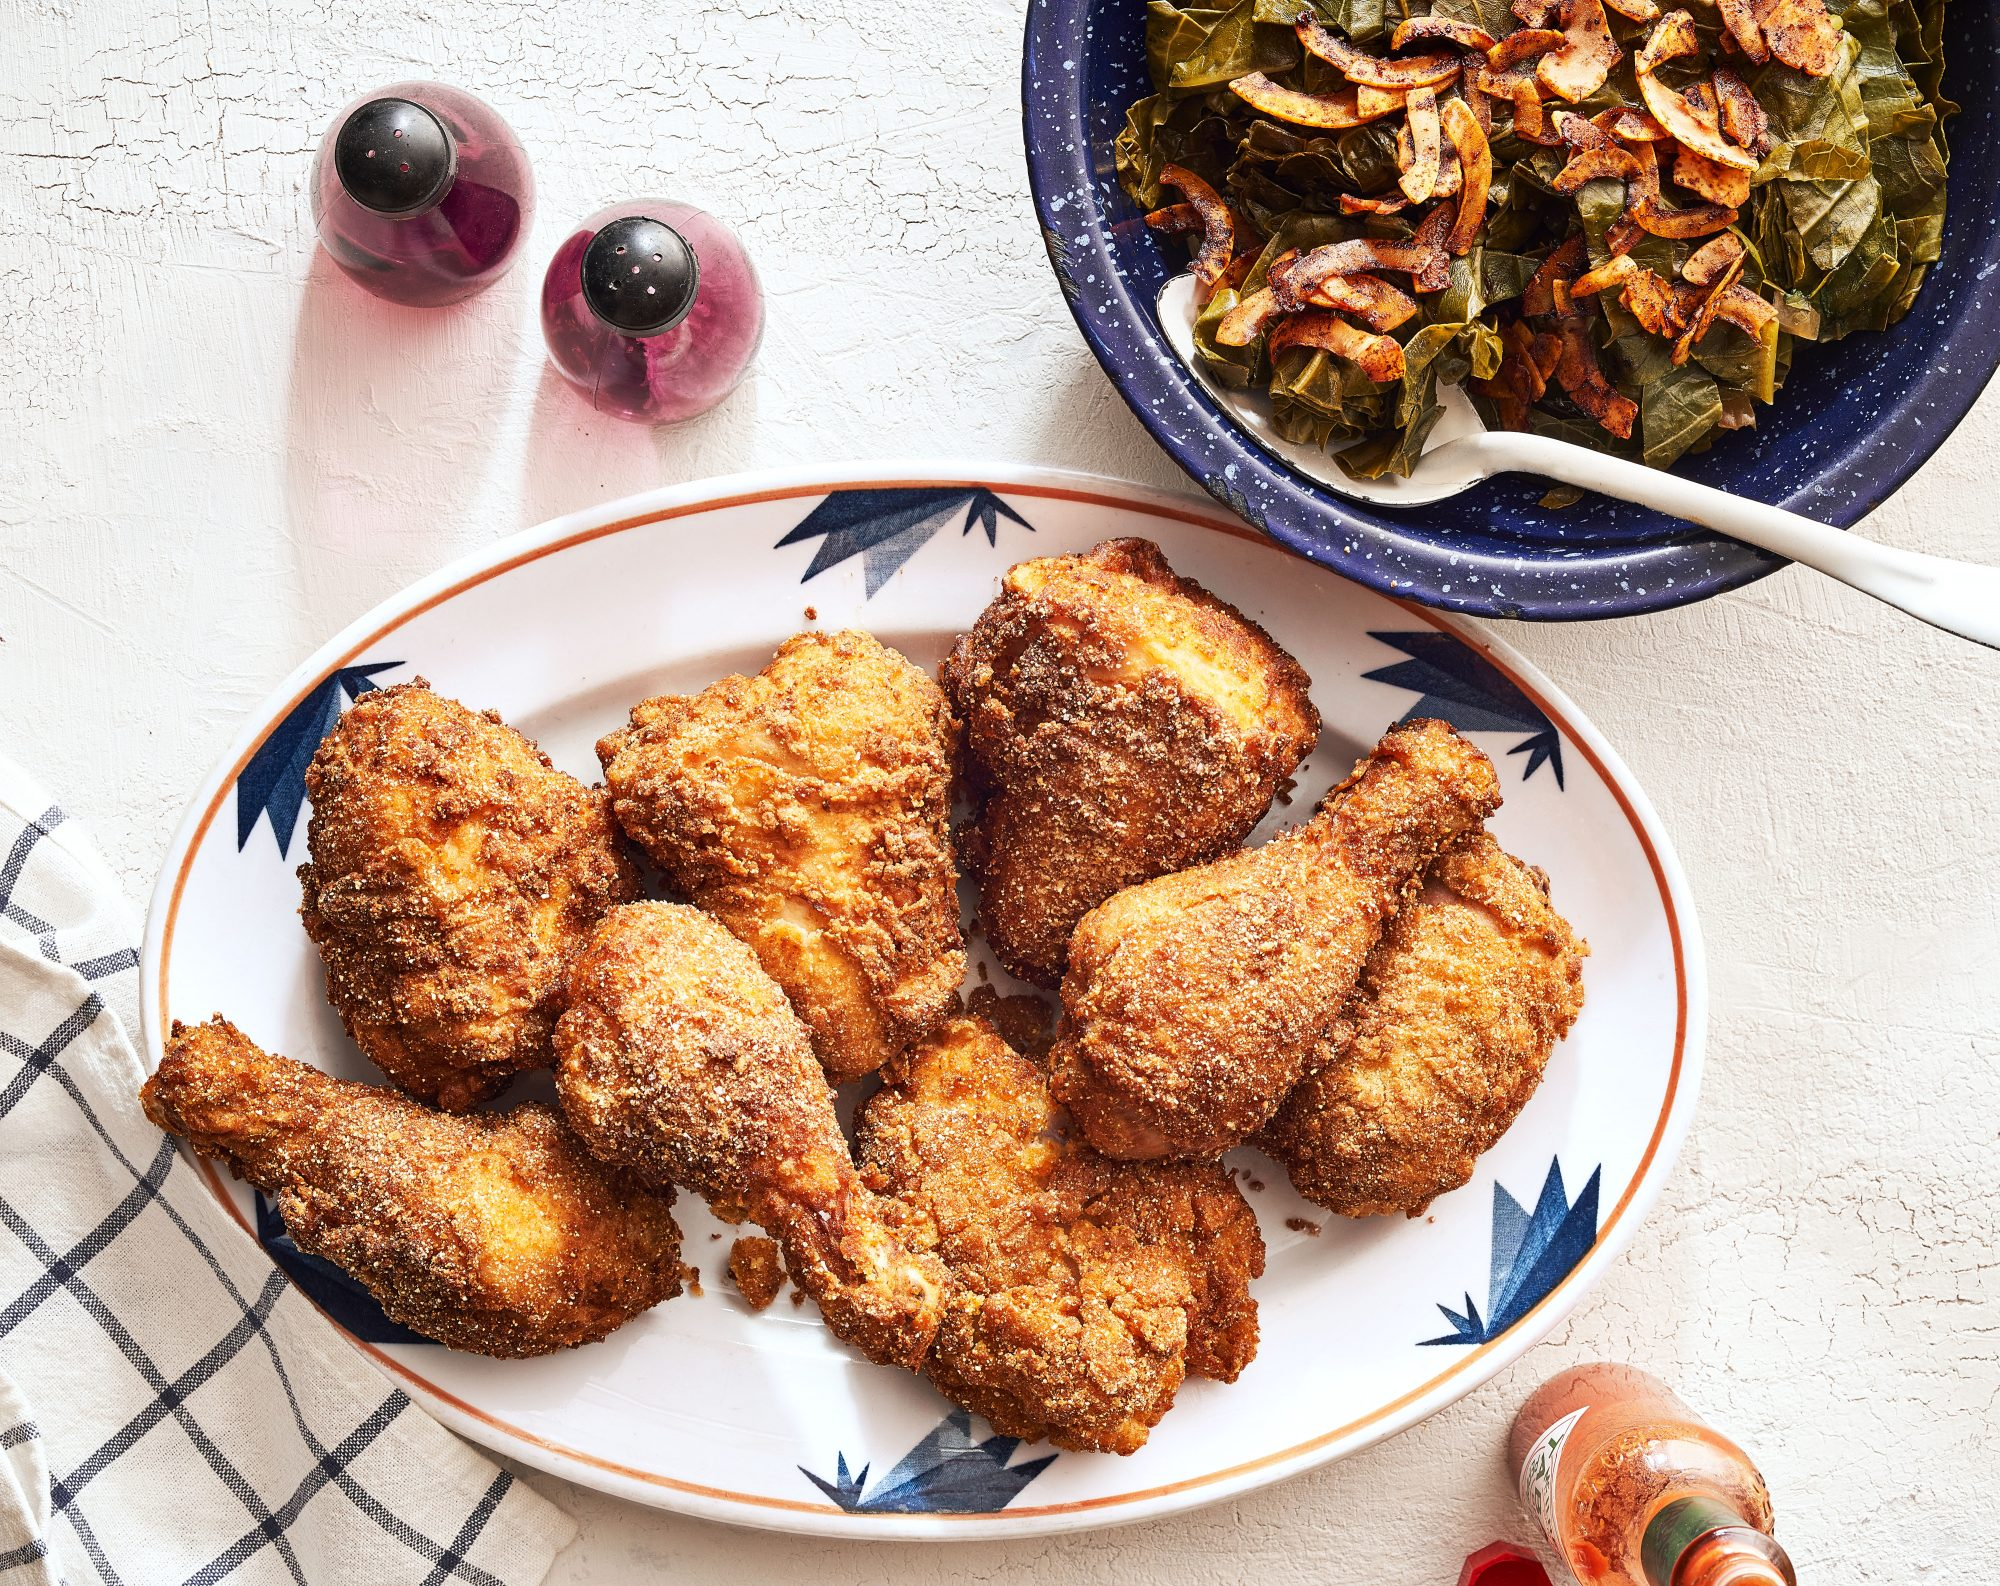 Mee McCormick's Pinewood Fried Chicken